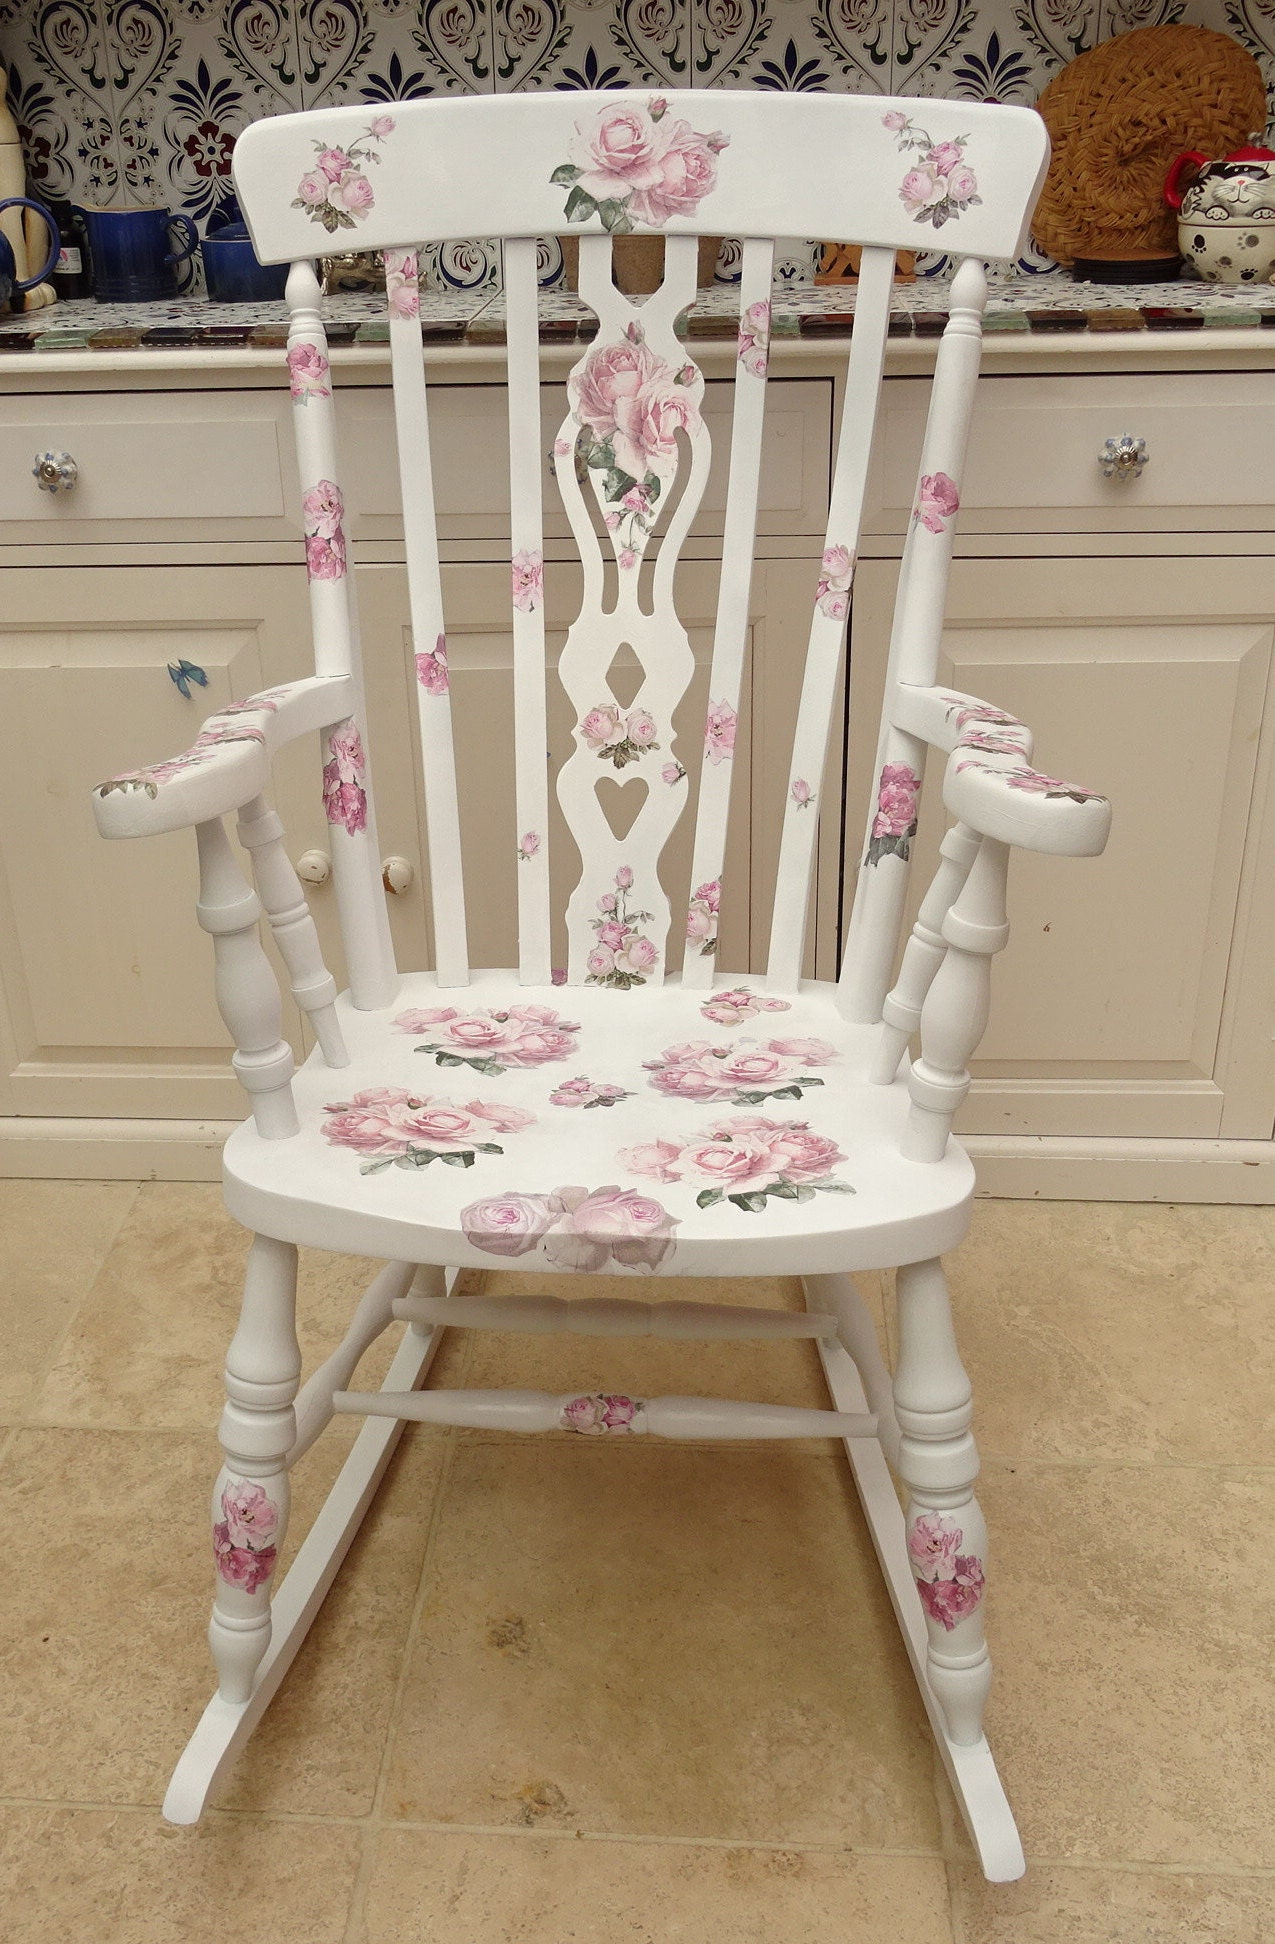 Awesome Rocking Chair Rose Design Decopatch Decoupage With Gmtry Best Dining Table And Chair Ideas Images Gmtryco